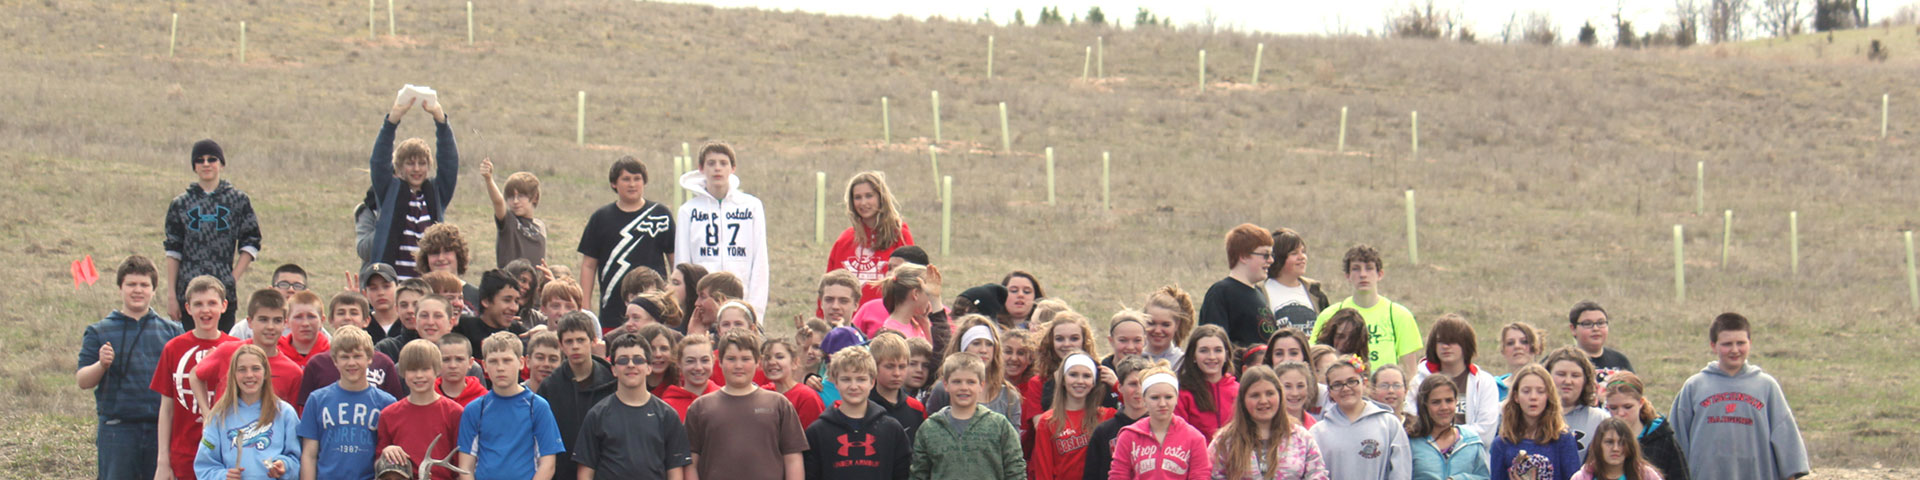 St-Marie-Tree-Planting